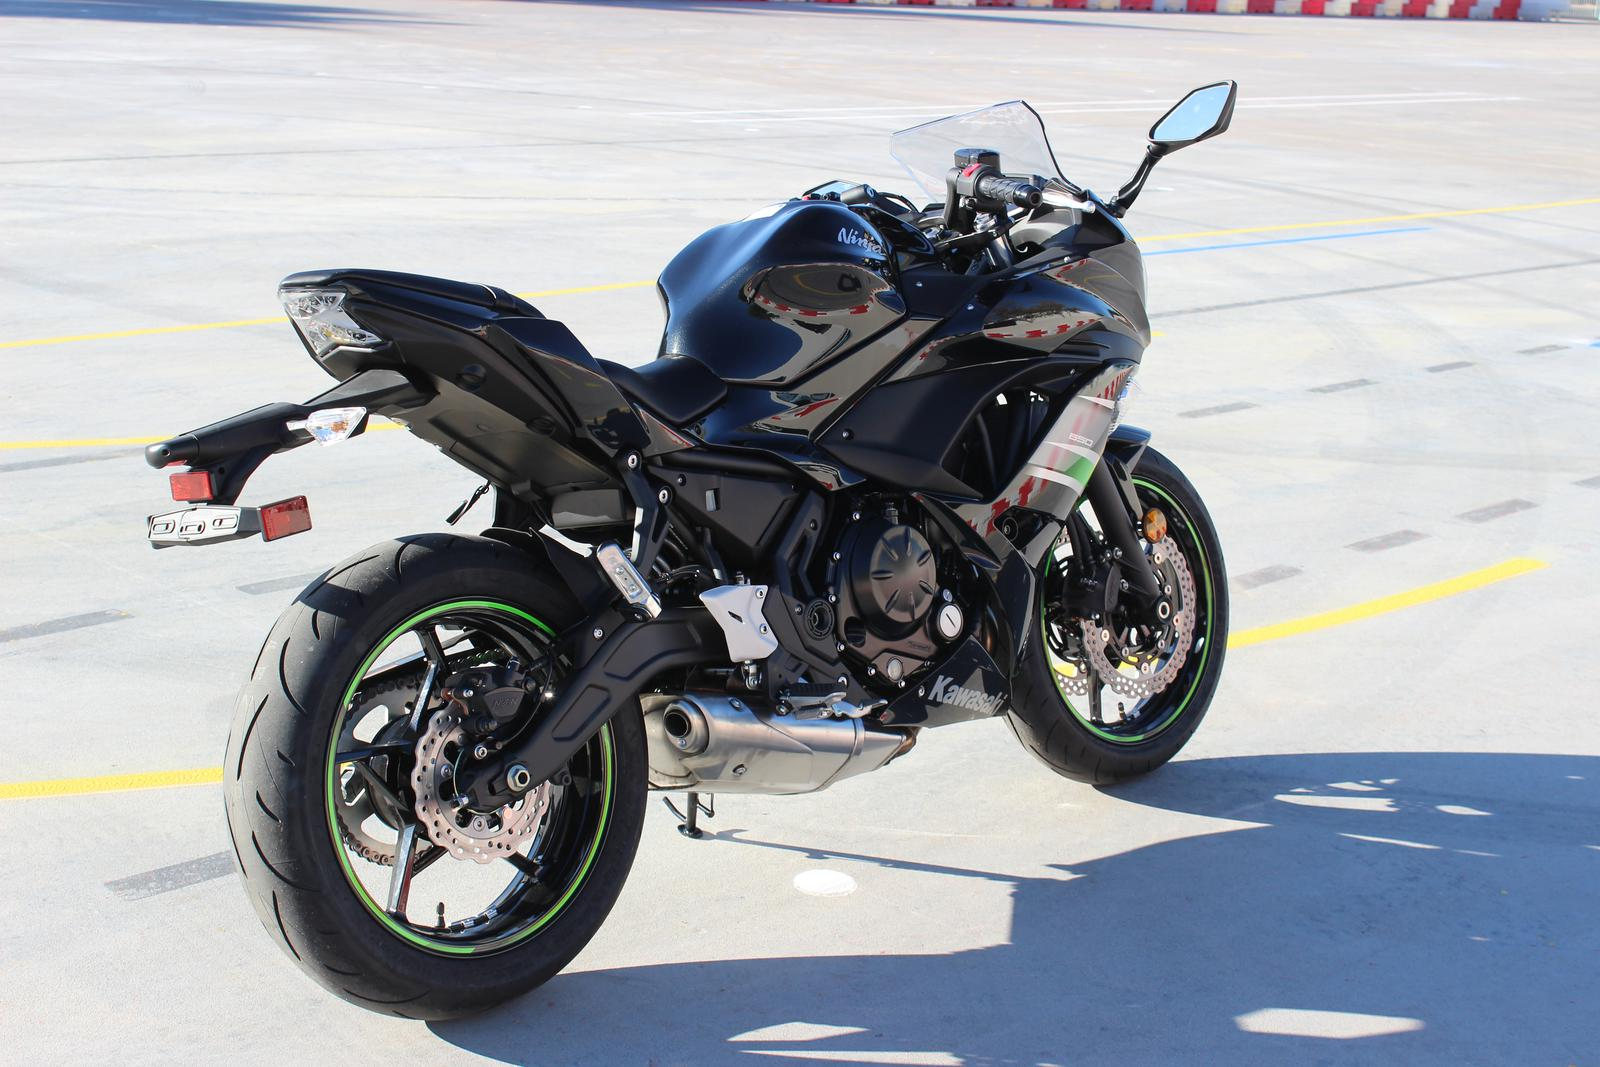 2019 Kawasaki NINJA 650 for sale in Scottsdale, AZ | GO AZ